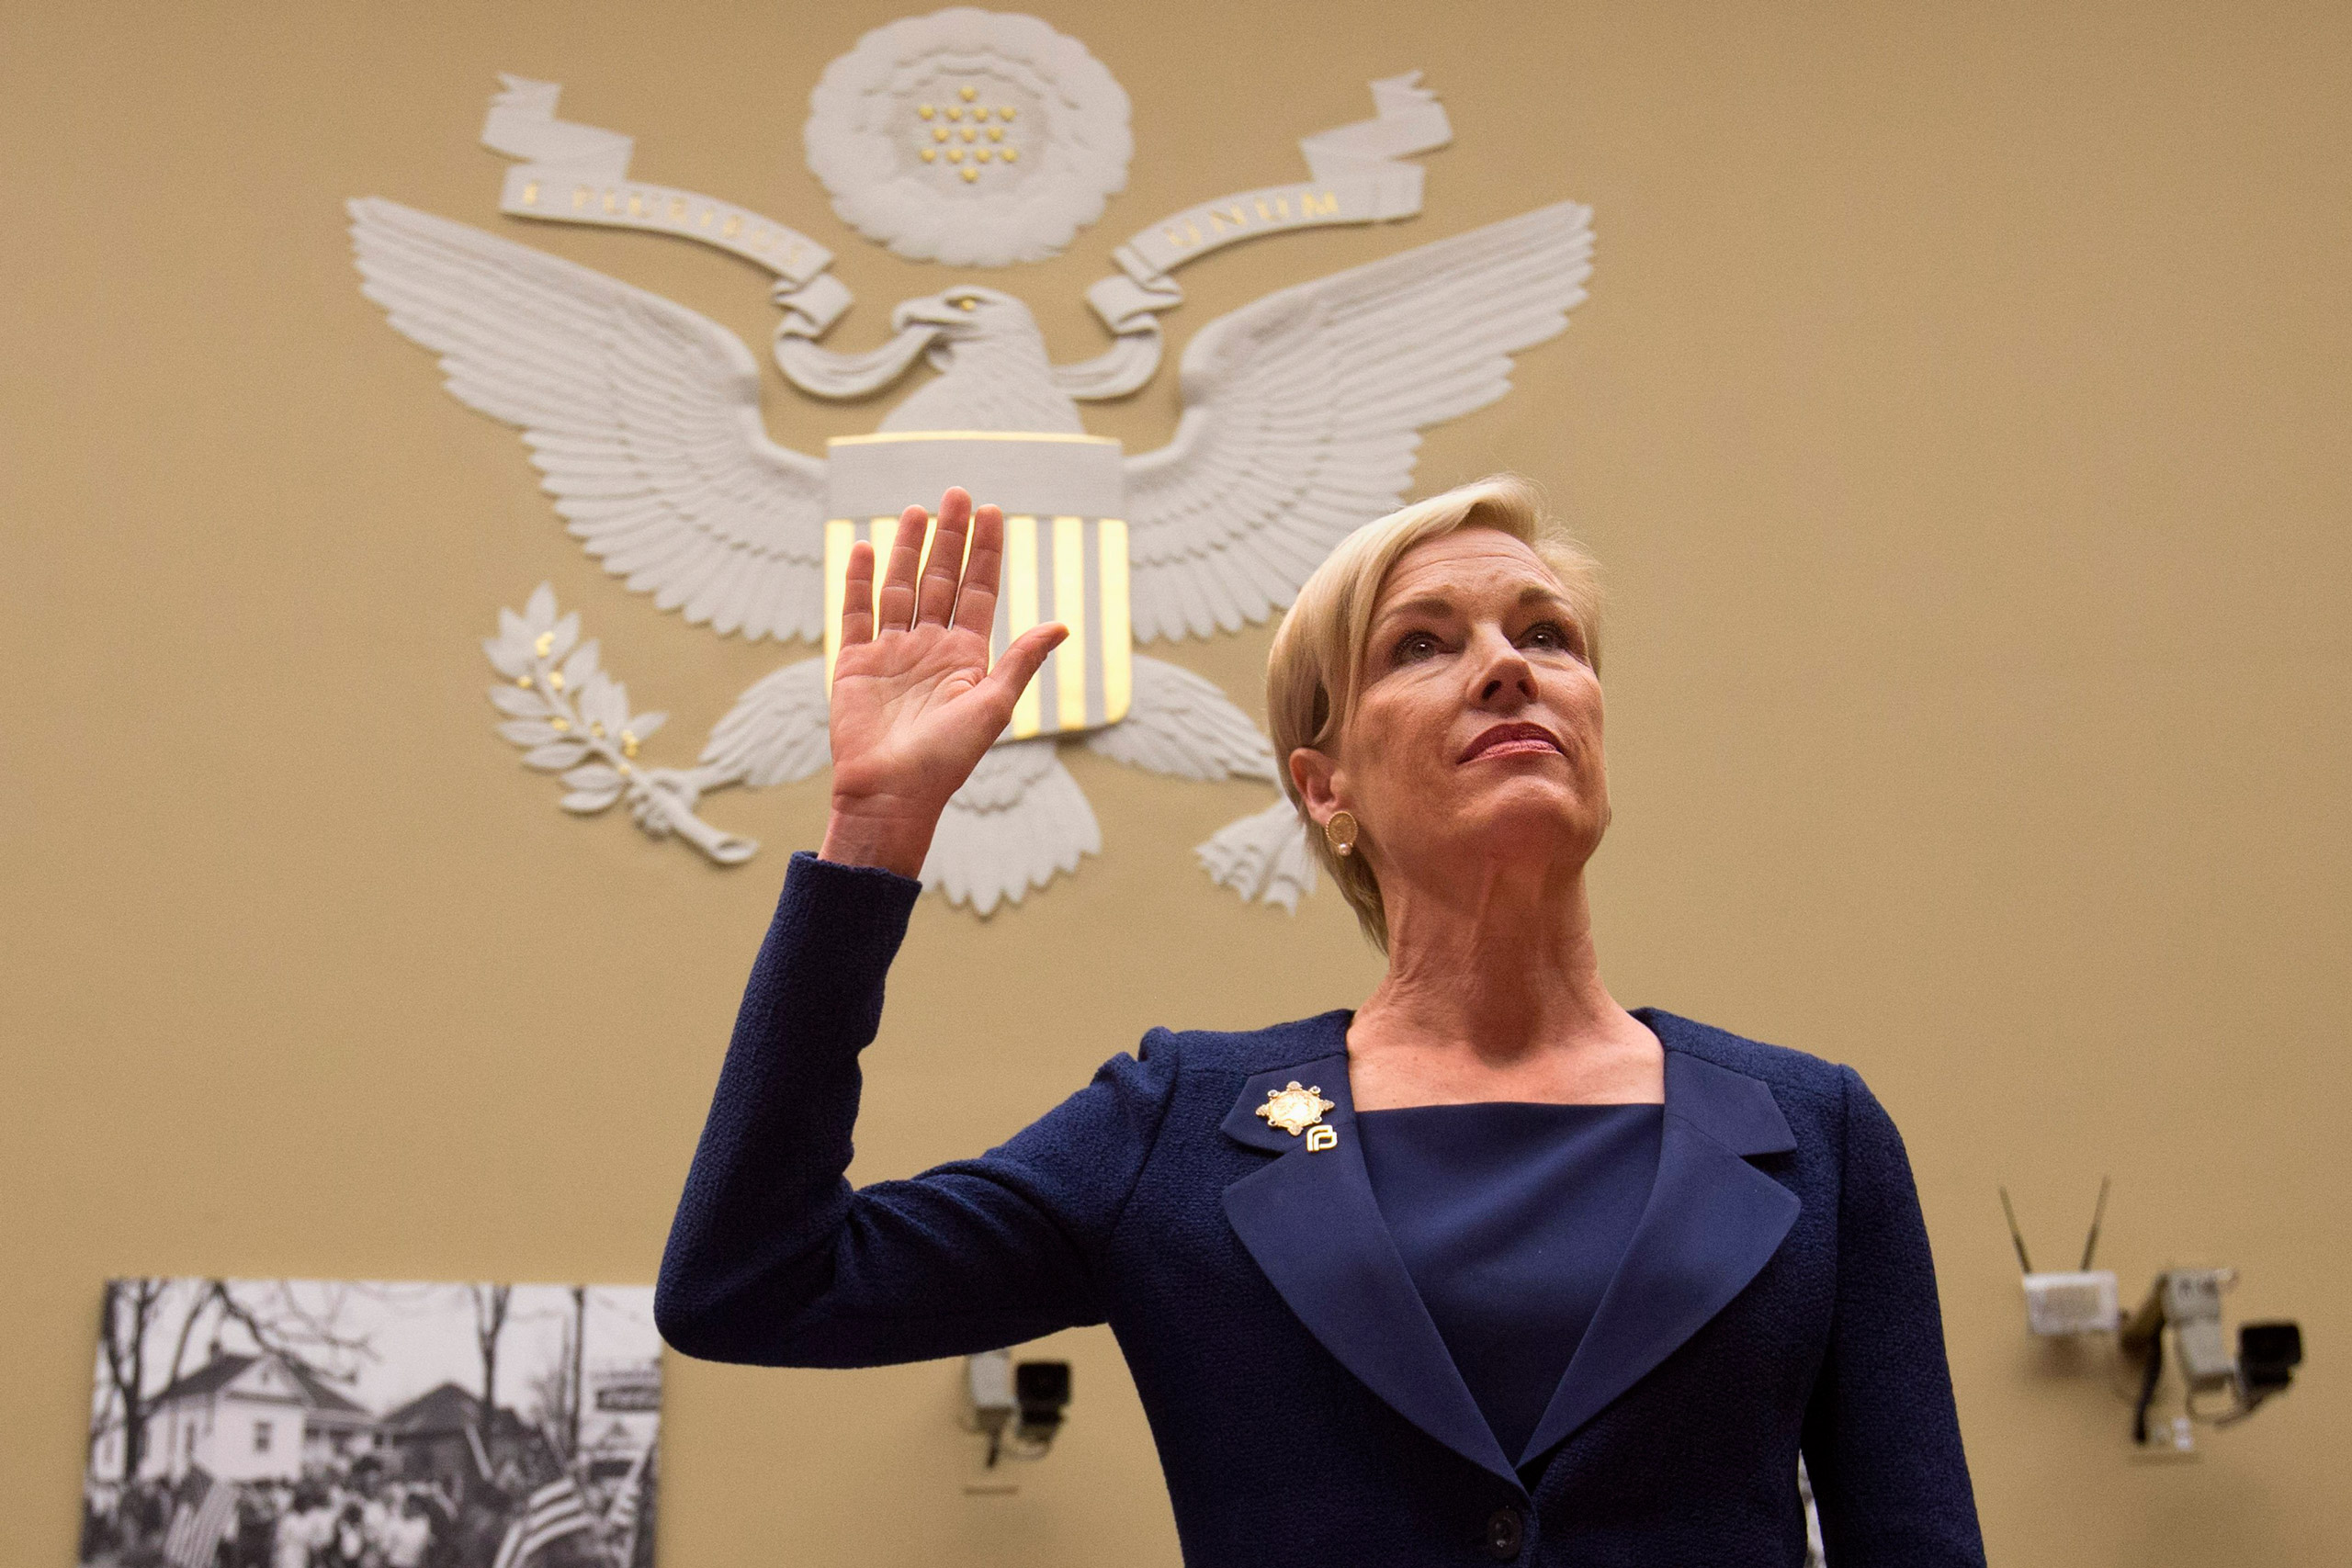 Planned Parenthood Federation of America President Cecile Richards is sworn in prior to testifying before the House Oversight and Government Reform Committee hearing in Washington on Sept. 29, 2015.